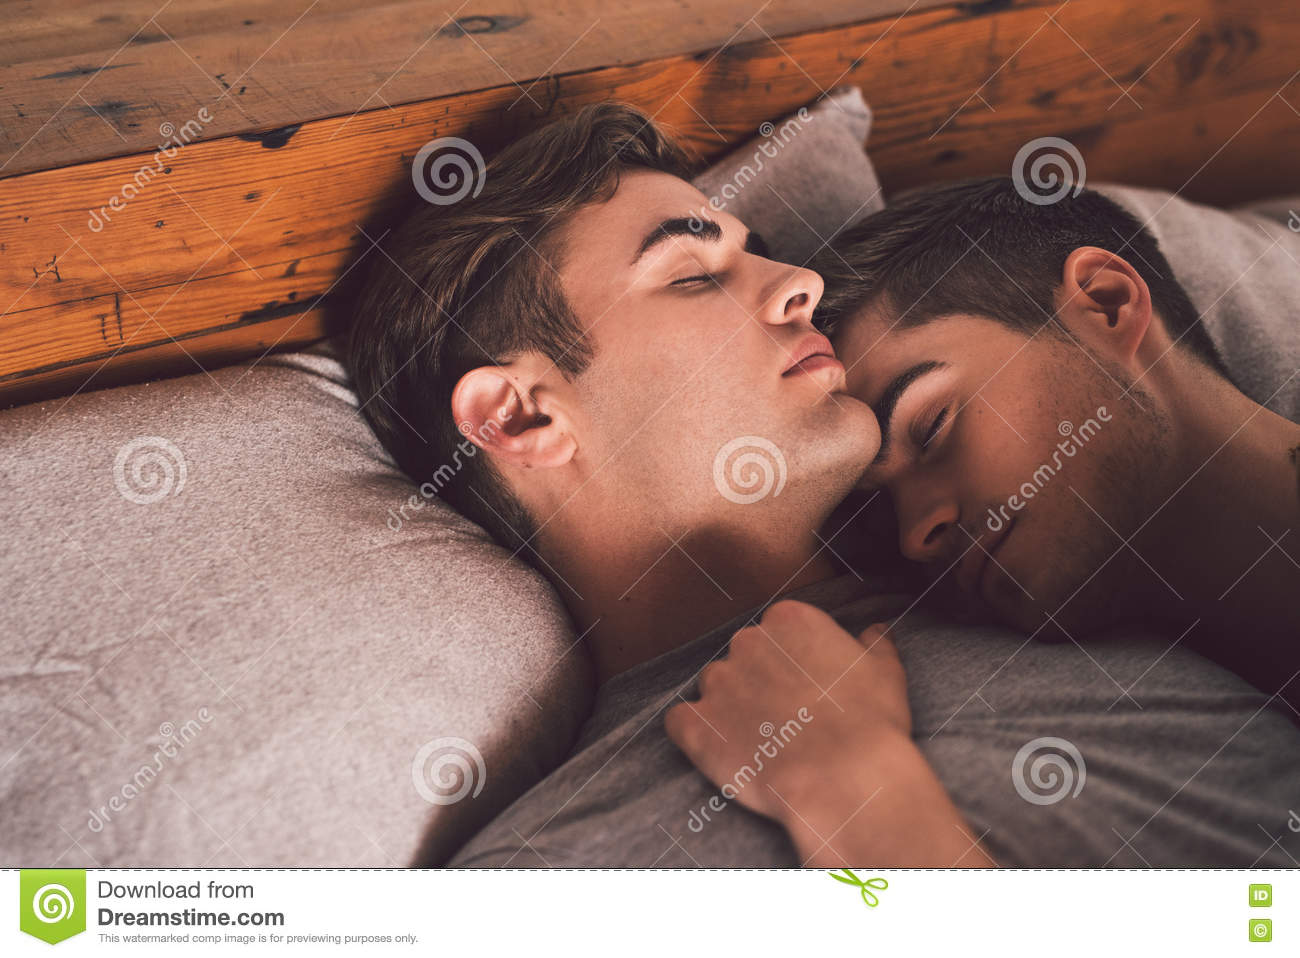 Free gay sleeping